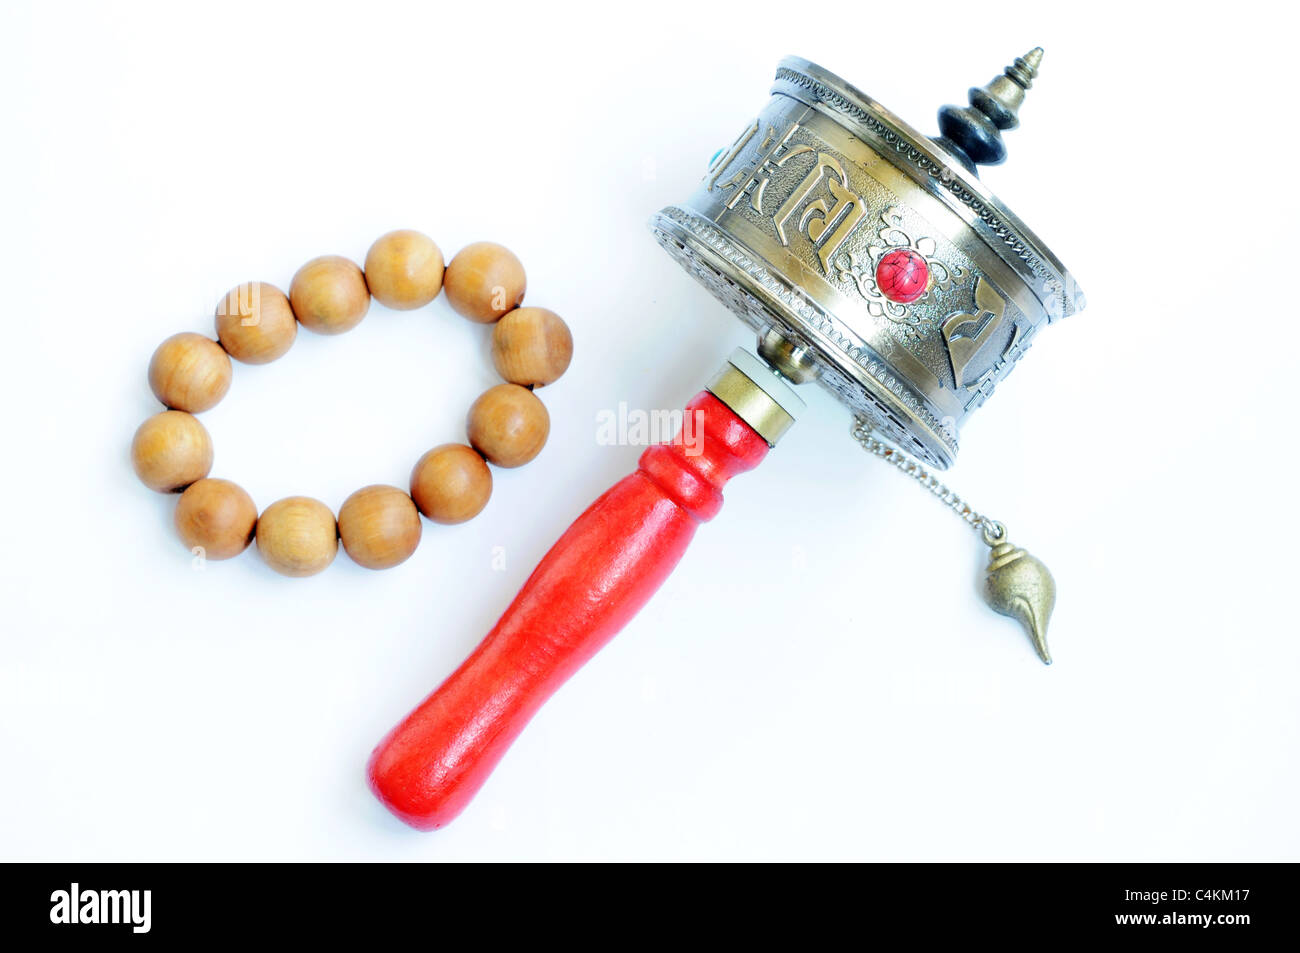 Closeup view of a Tibetan prayer wheel isolated on a white background. - Stock Image